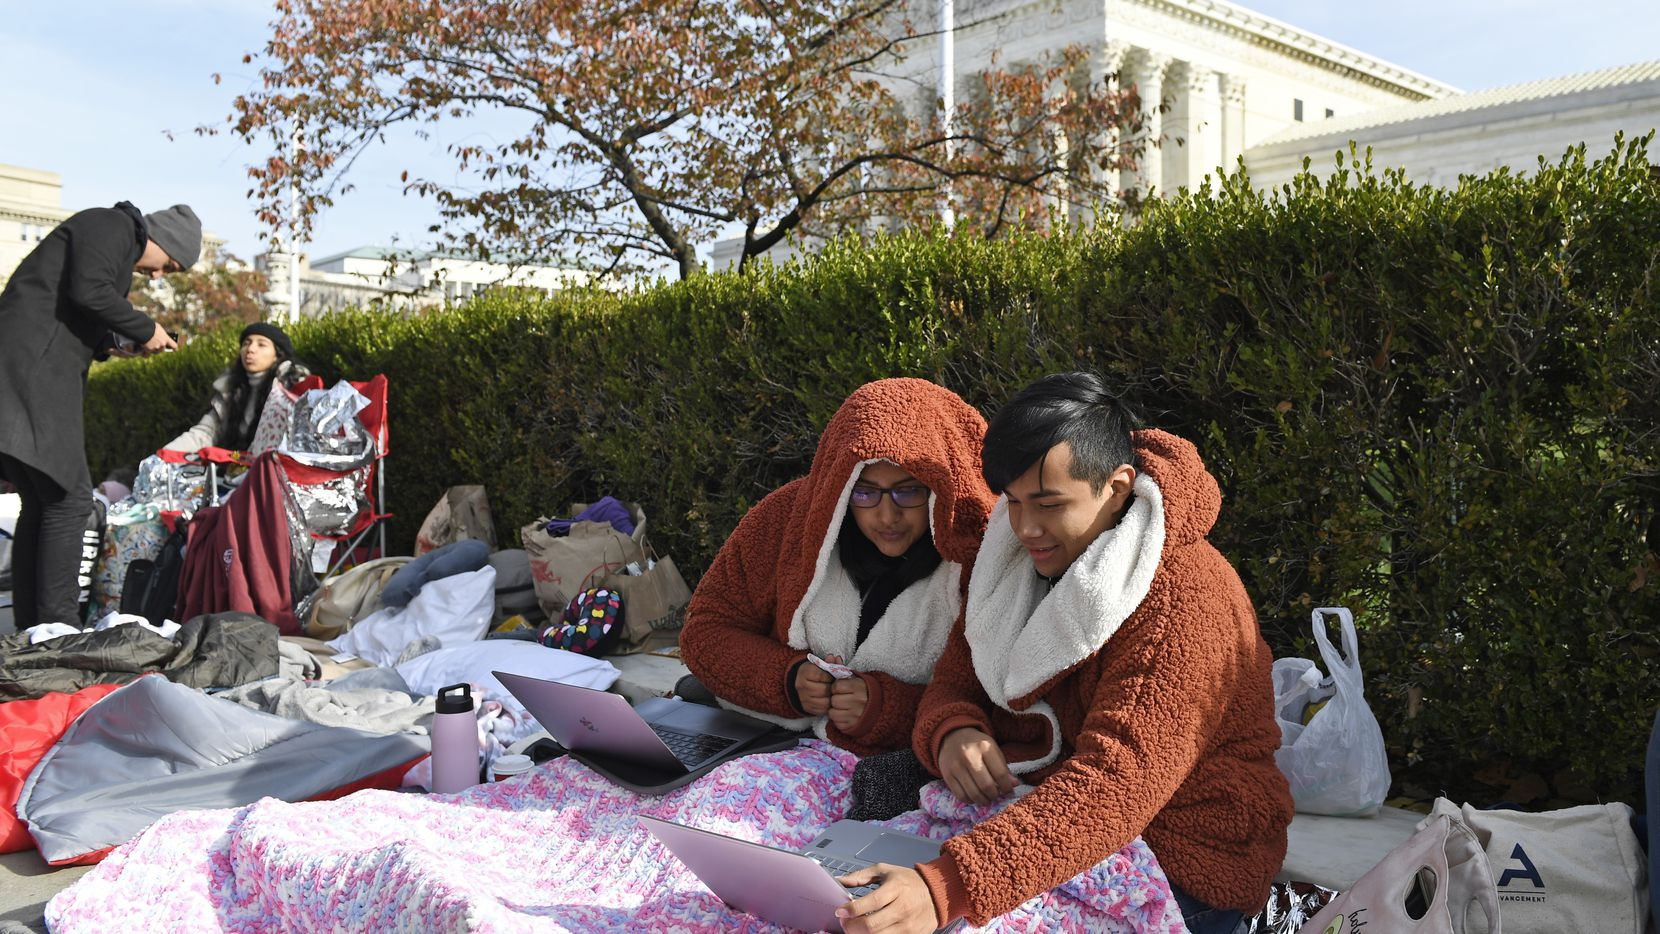 Monica Sibri, left, who is originally from Ecuador and now lives in New York, sits next to Diego Tum-Monge of Grand Island, Neb., right as they wait in line outside the Supreme Court in Washington, Monday, Nov. 11, 2019, to be able to attend oral arguments Tuesday in the case of President Trump's decision to end the Obama-era, Deferred Action for Childhood Arrivals program.